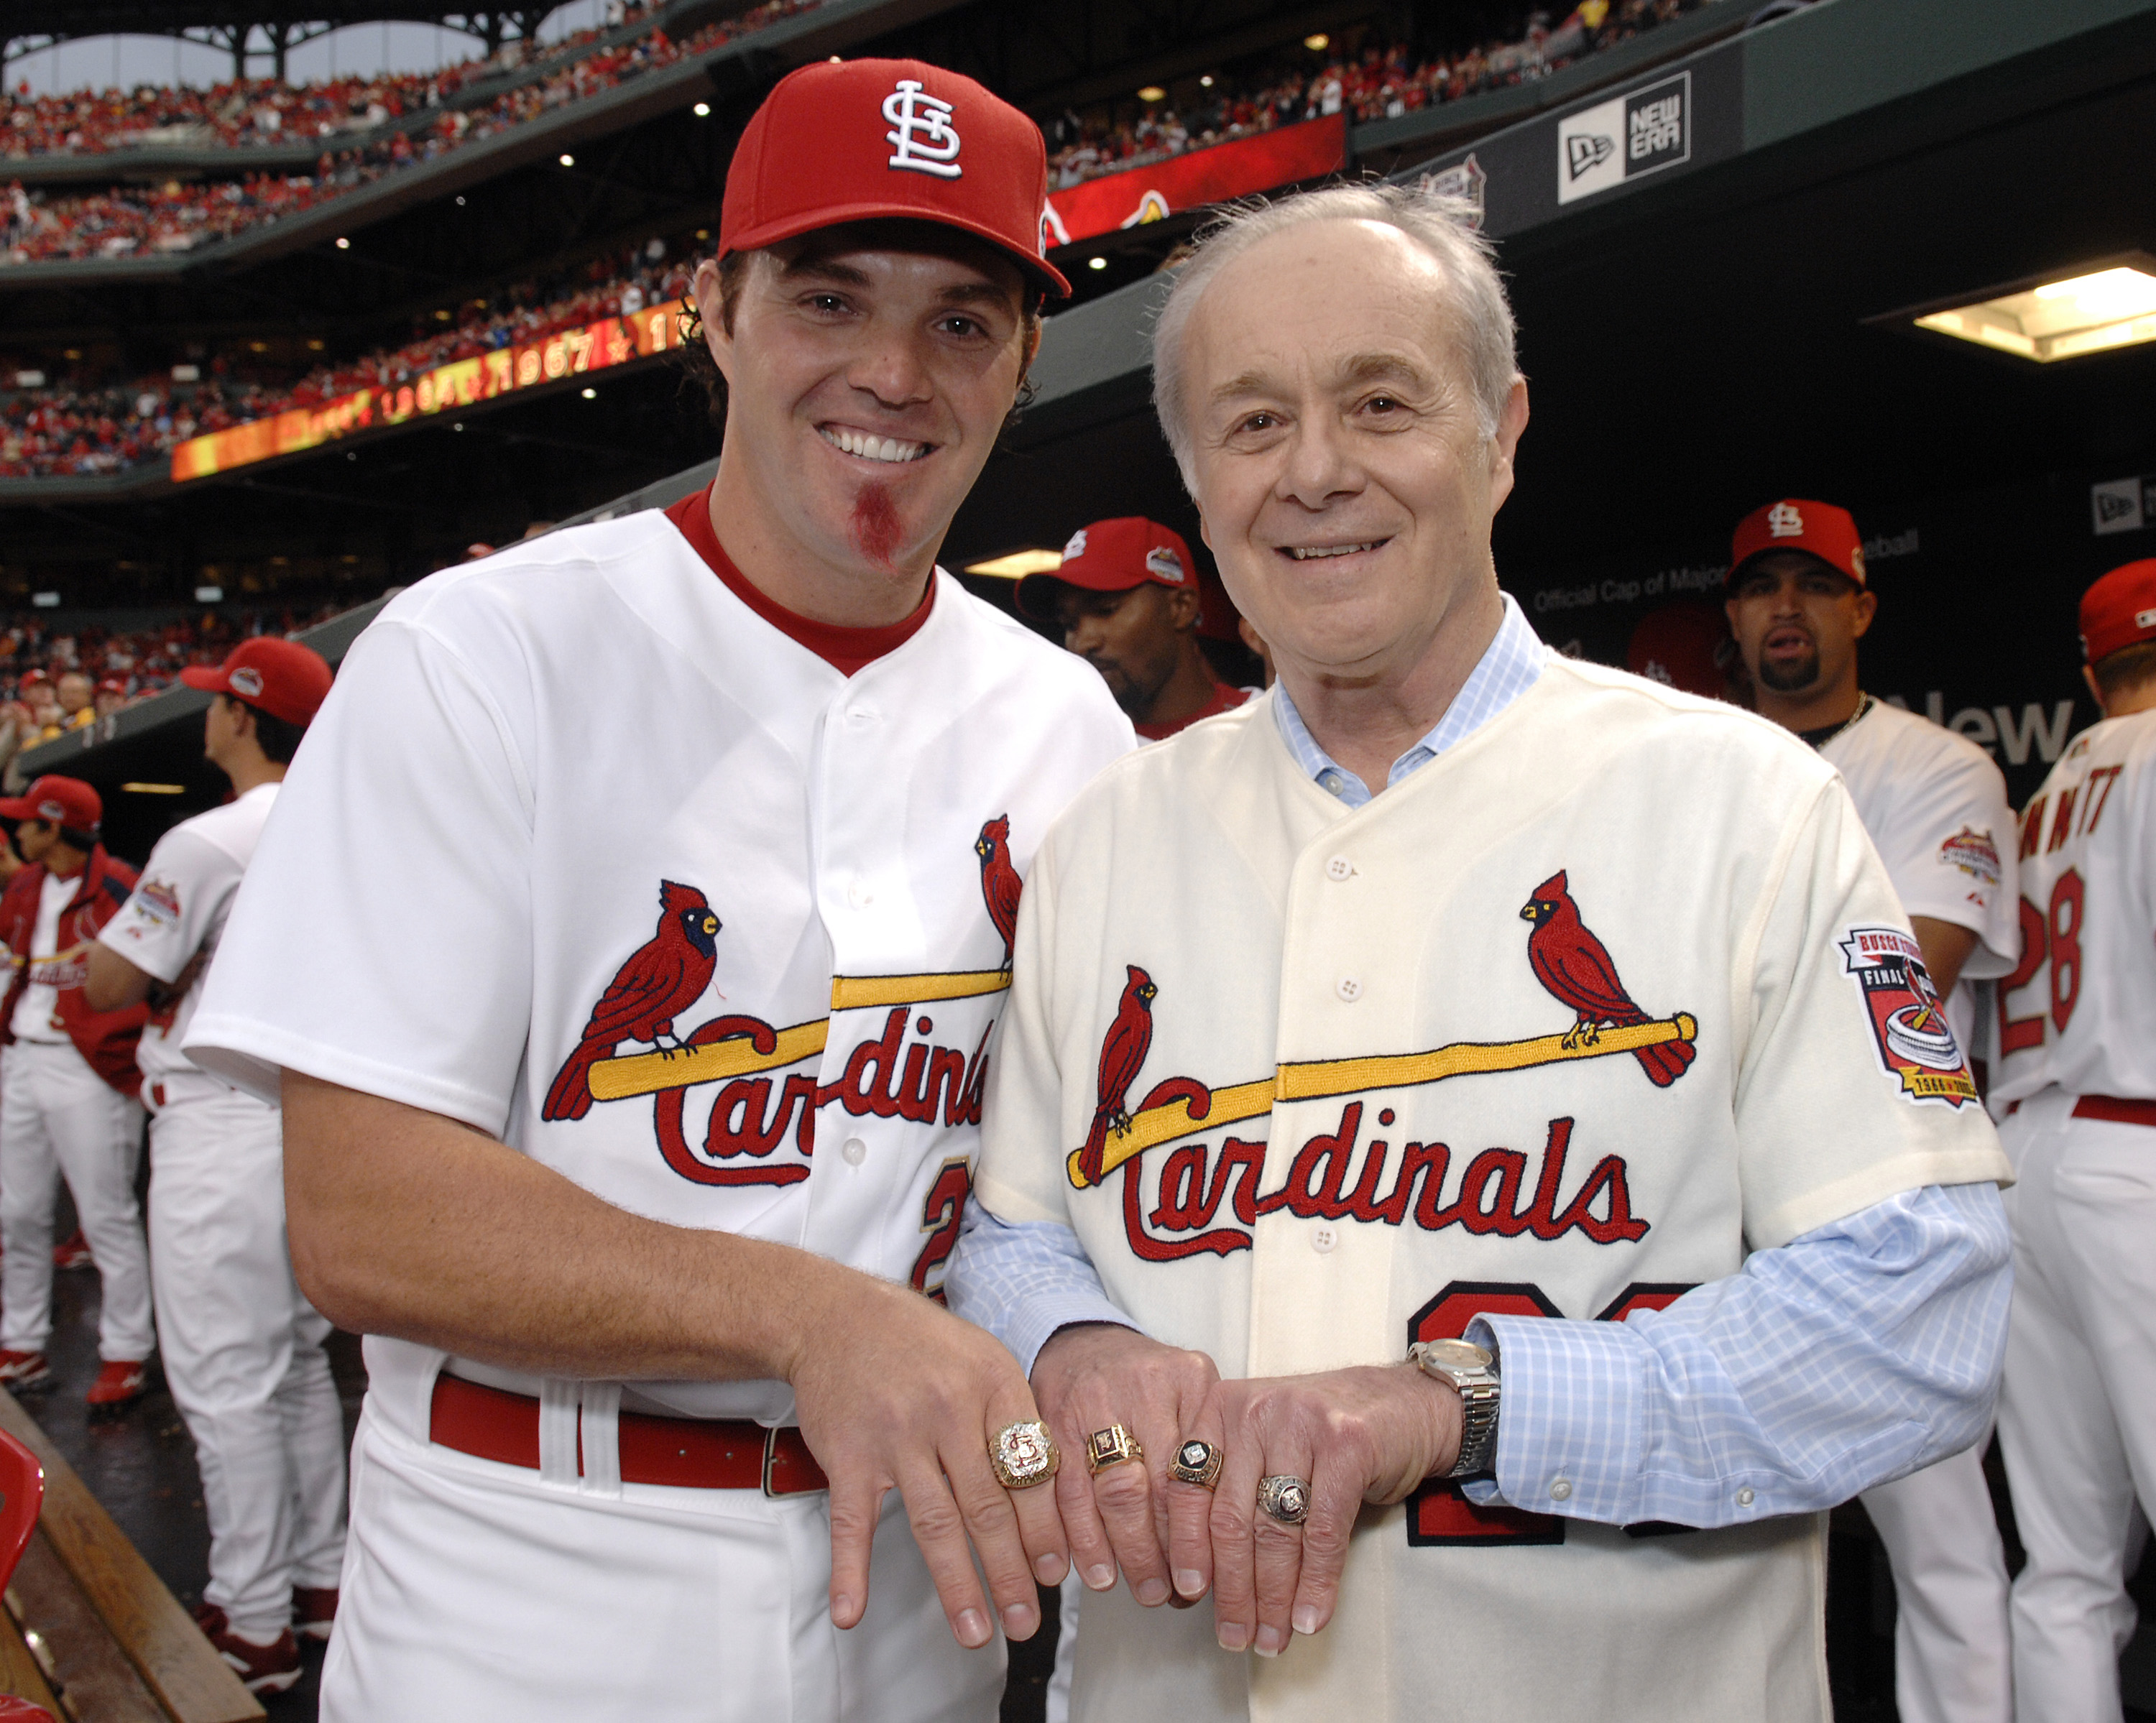 St. Louis Cardinals World Series Ring Ceremony